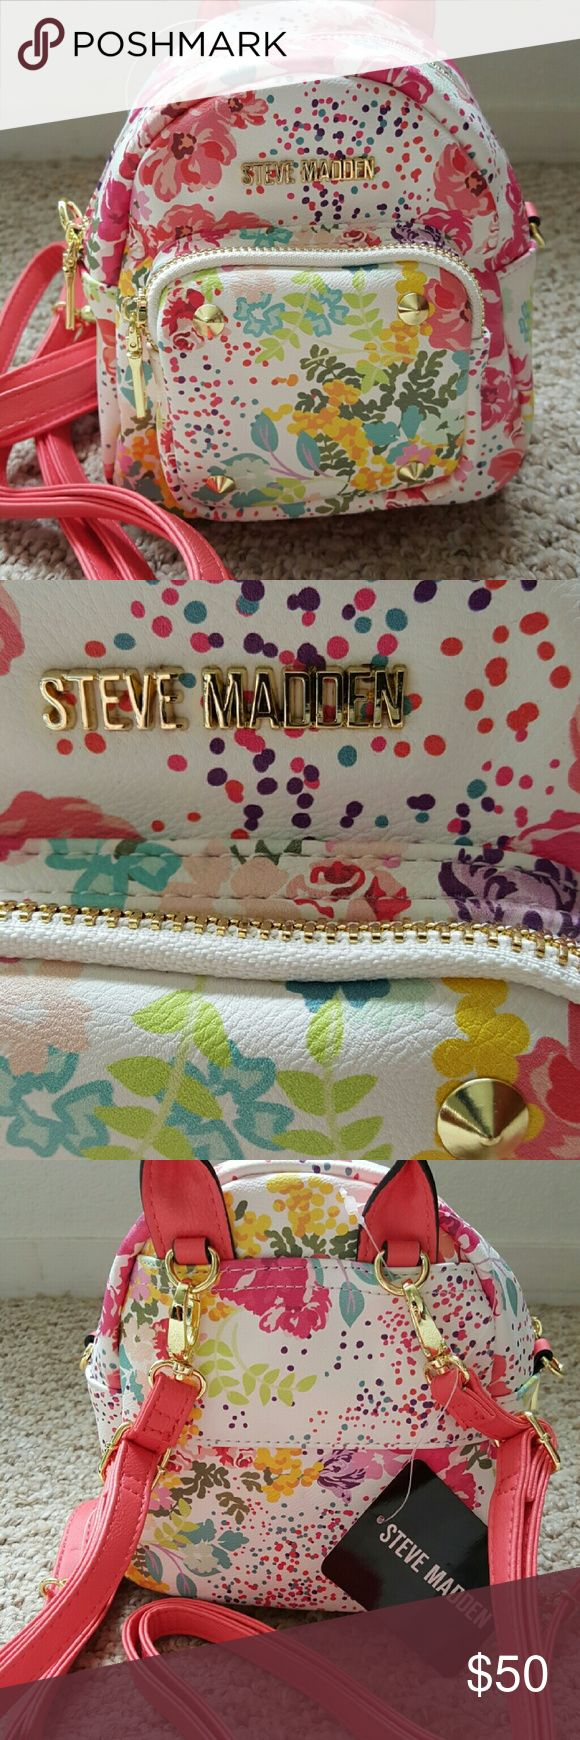 "NWT Steve Madden  Floral Mini Backpack Fully reversible from backpack to bag.. Zippered front pocket and interior. 7"" long, 6.5"" tall and 4.5"" deep Steve Madden Bags"